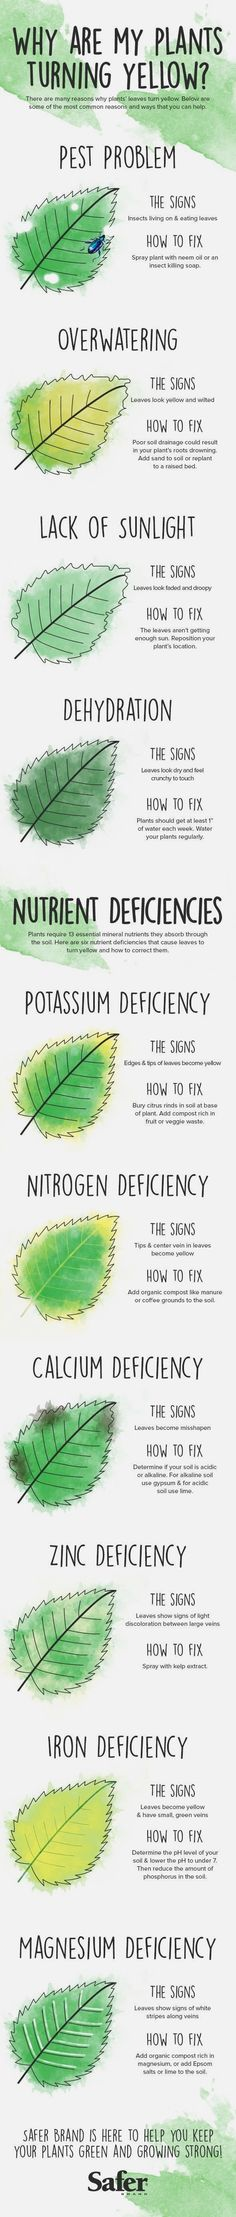 Why are my plants turning yellow? If your vegetable garden or house plants have gone from verdant to flavescent, it could be a sign of health issues like too much water or too few nutrients. A new infographic offers tips for getting to the root of the problem.  #VegetableGarden